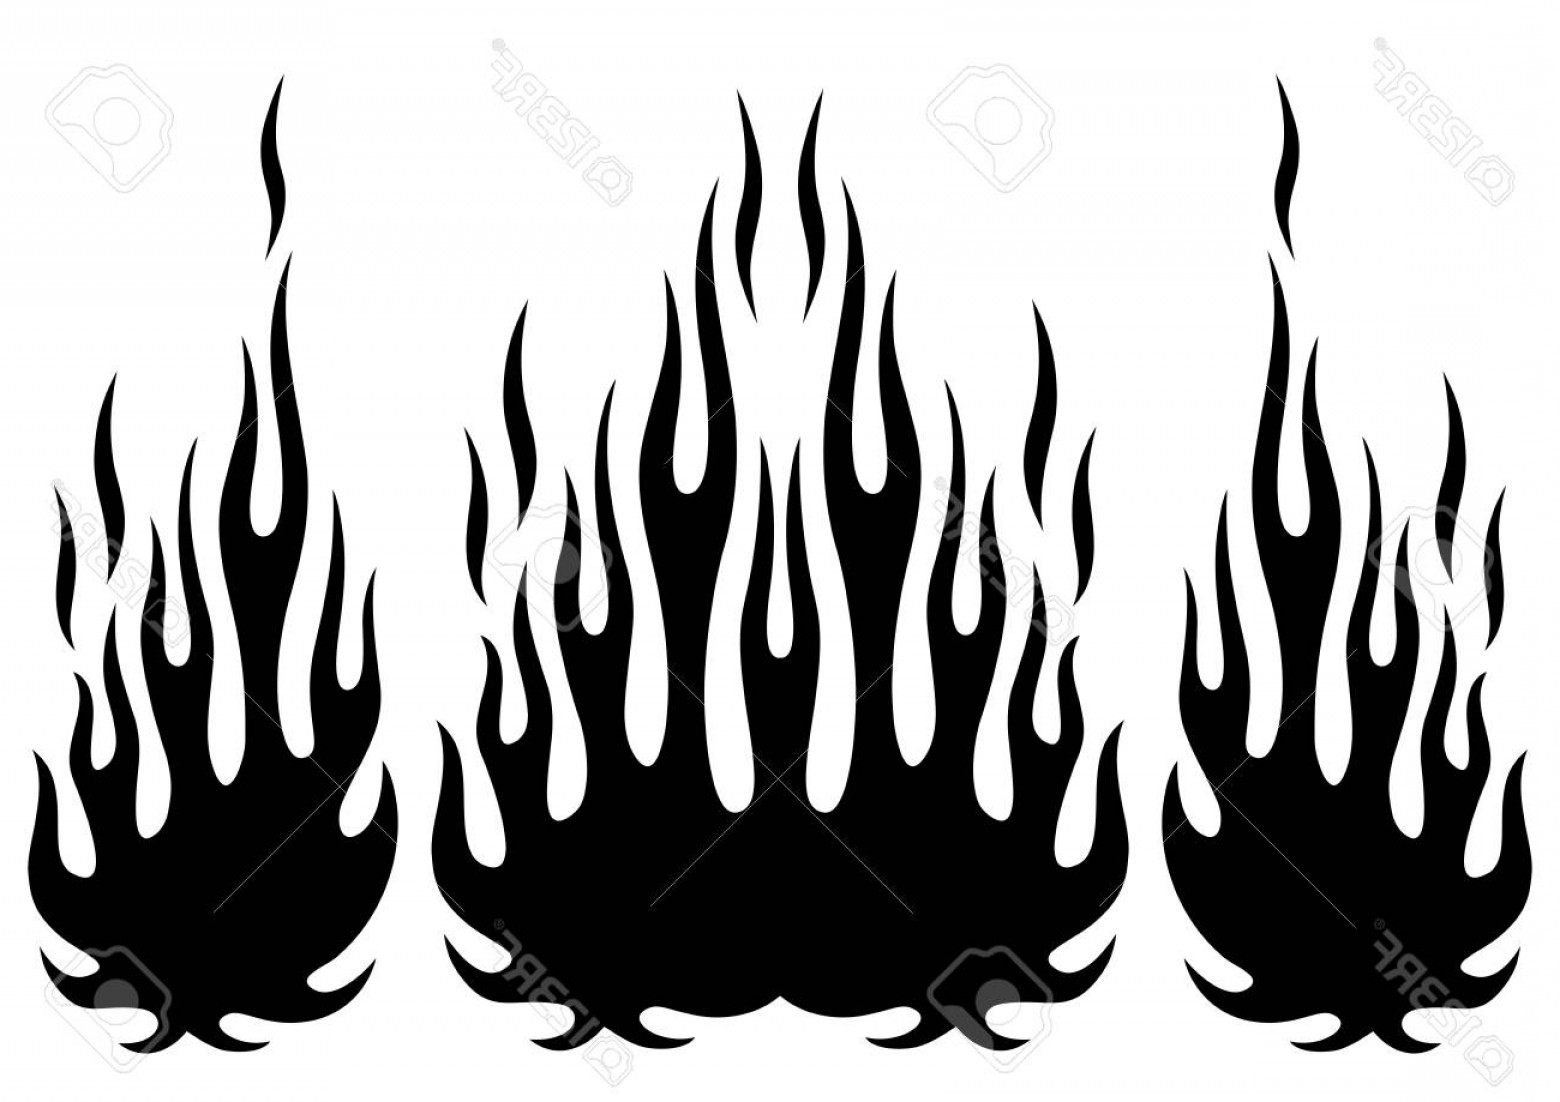 Tribal Flames Vector Car: Photostock Vector Tribal Hotrod Muscle Car Silhouette Flame Kit For Car Hoods And Sides Can Be Used As Decals And Tatt